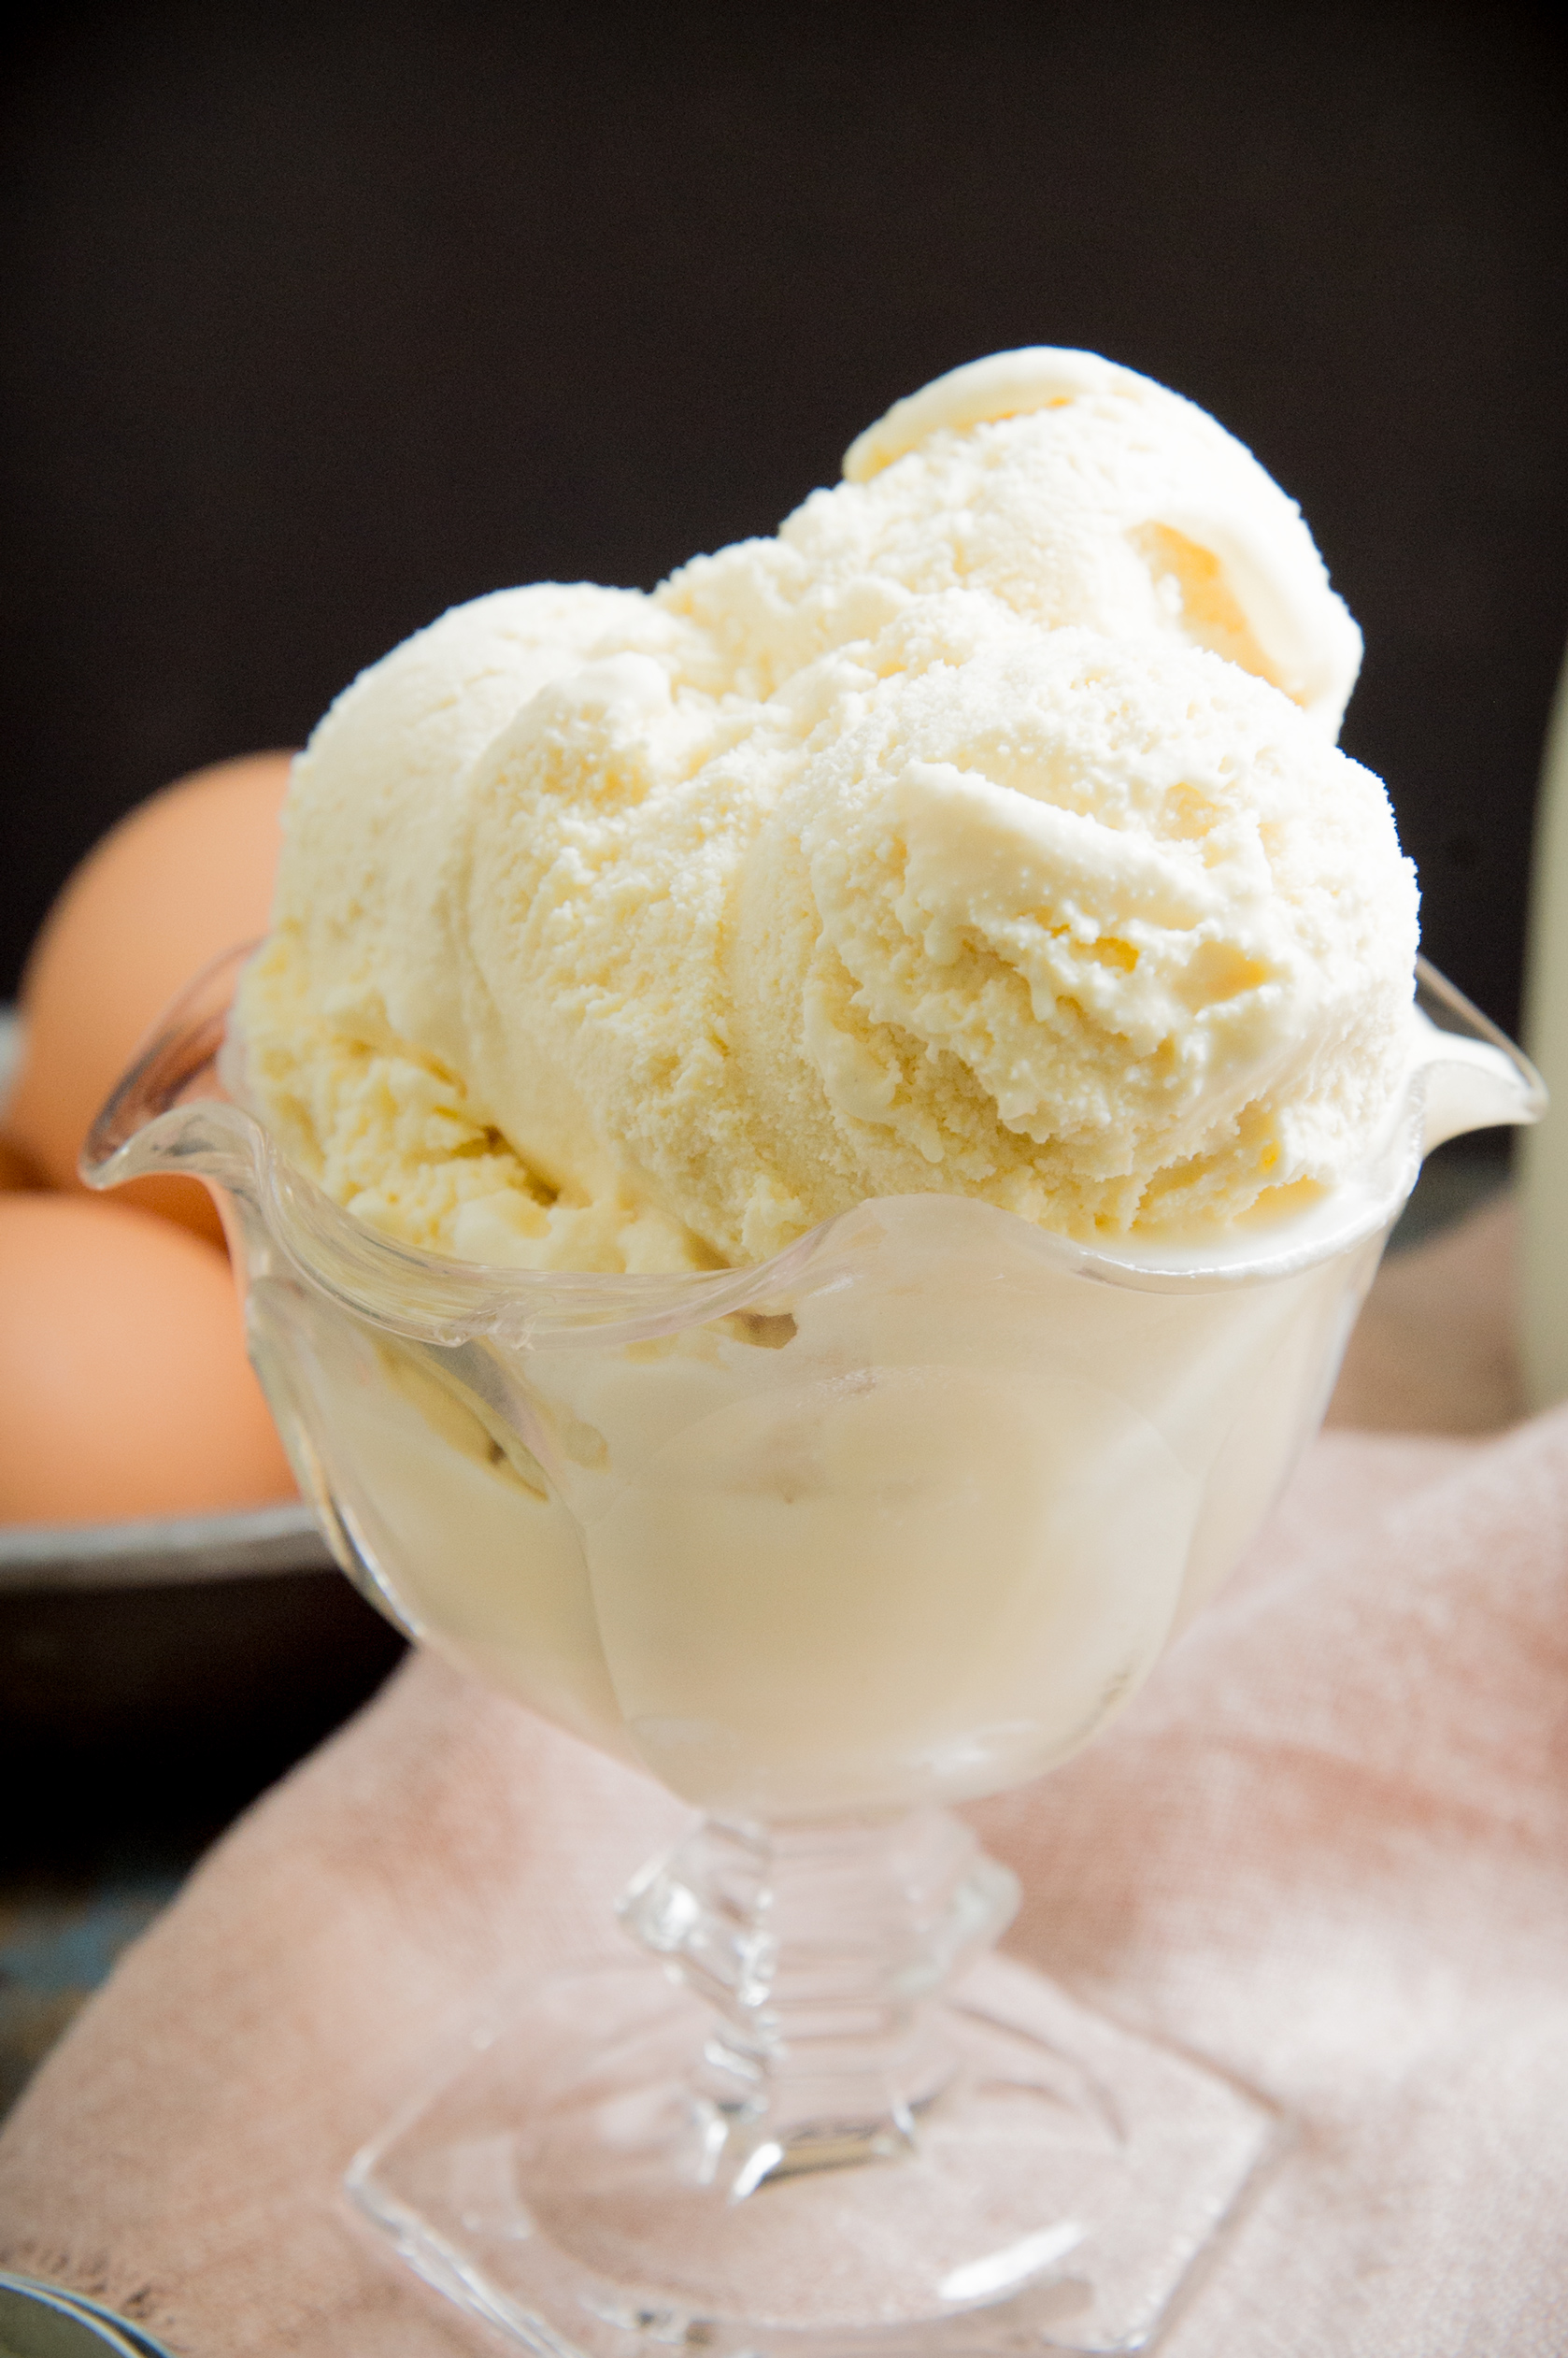 Low Carb Keto Vanilla Ice Cream Recipe-close up of ice cream.